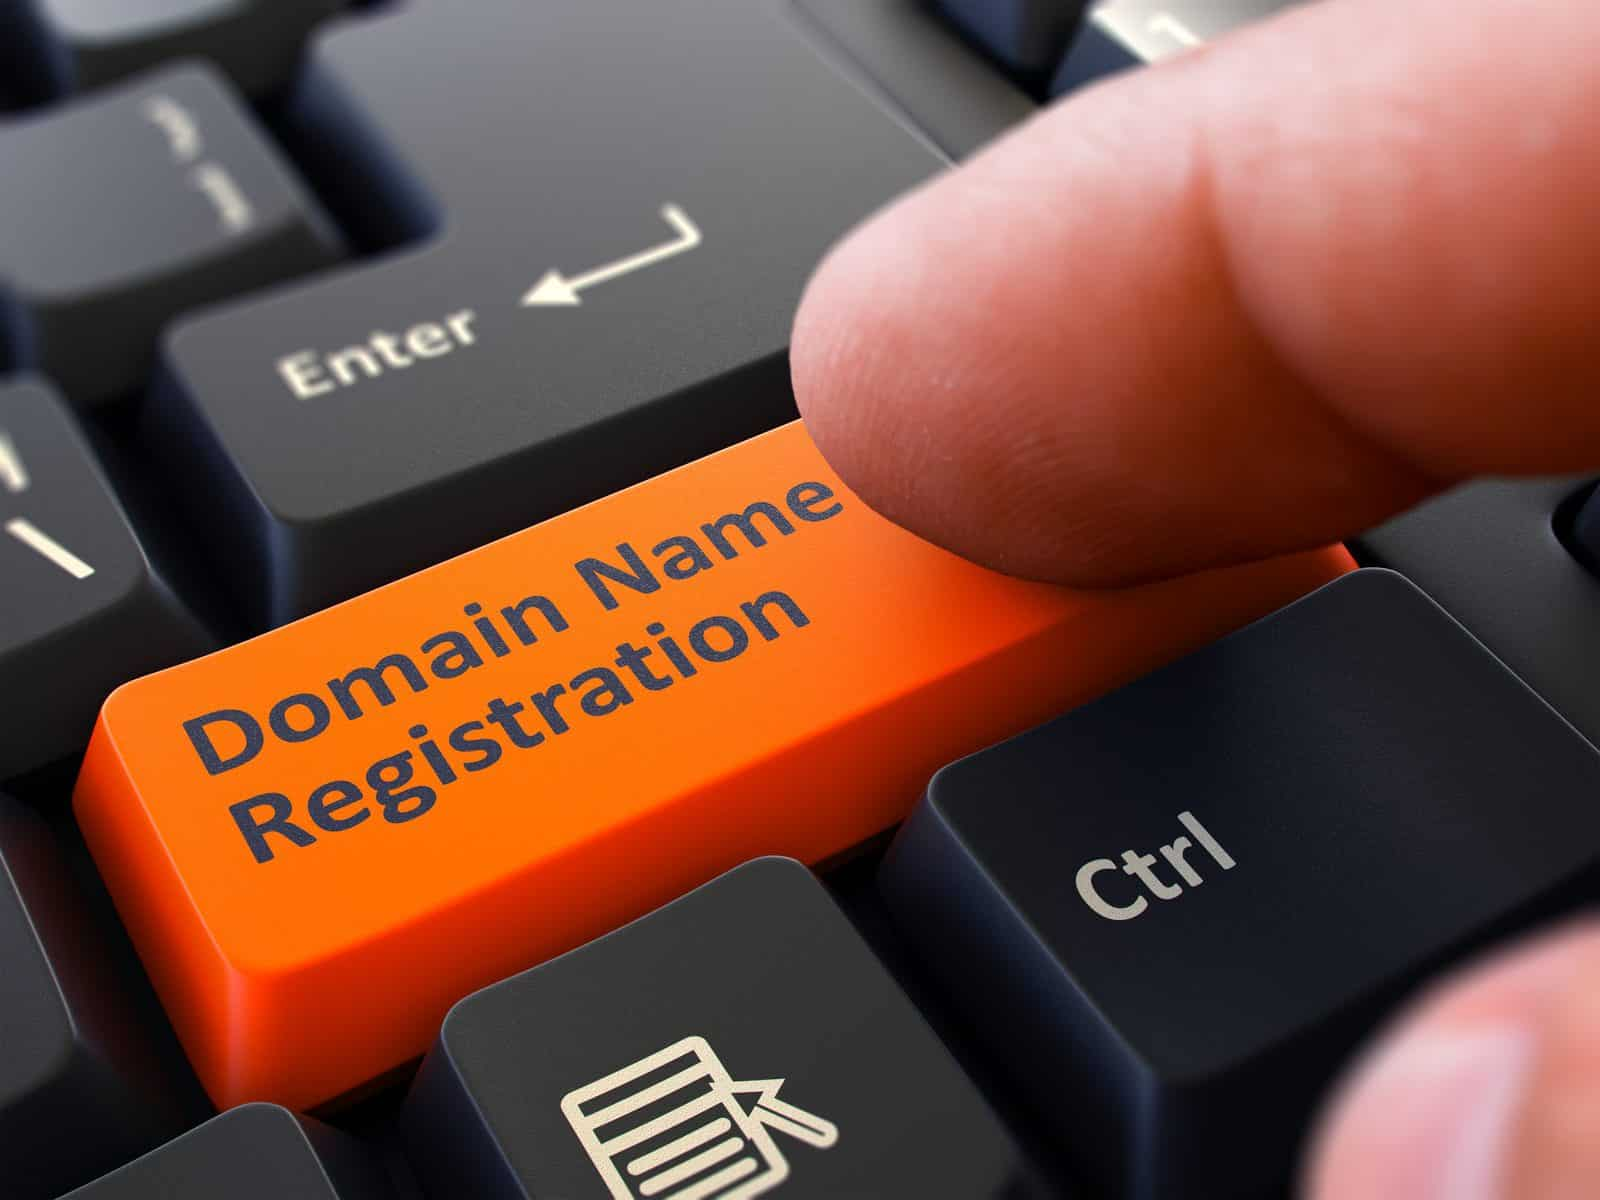 Domain name Registar